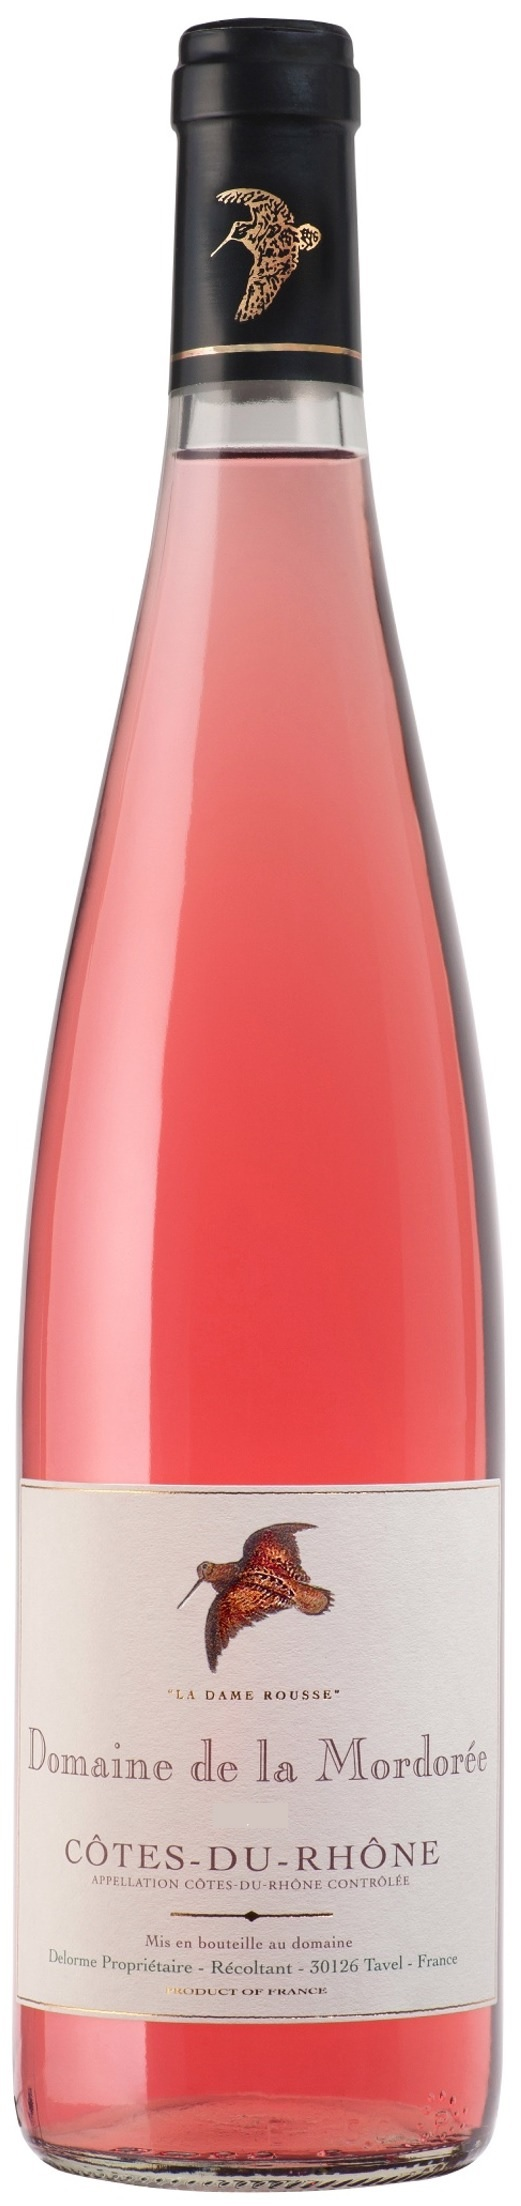 Mordoree Cotes Du Rhone Rose 2017 Timeless Wines Order Wine Online From The United States California Wines French Wines Spanish Wines Chardonnay Port Cabernet Savignon